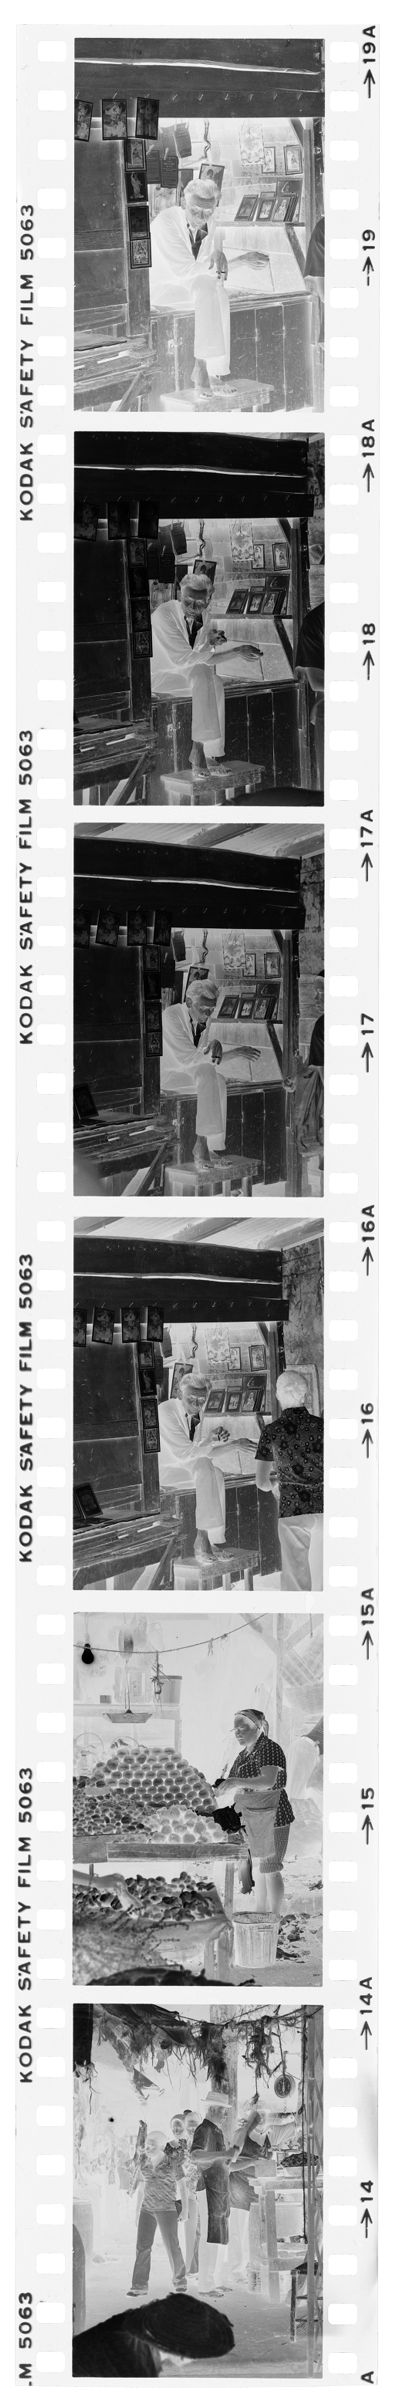 Untitled (Food Stands And Picture Stall In Market)